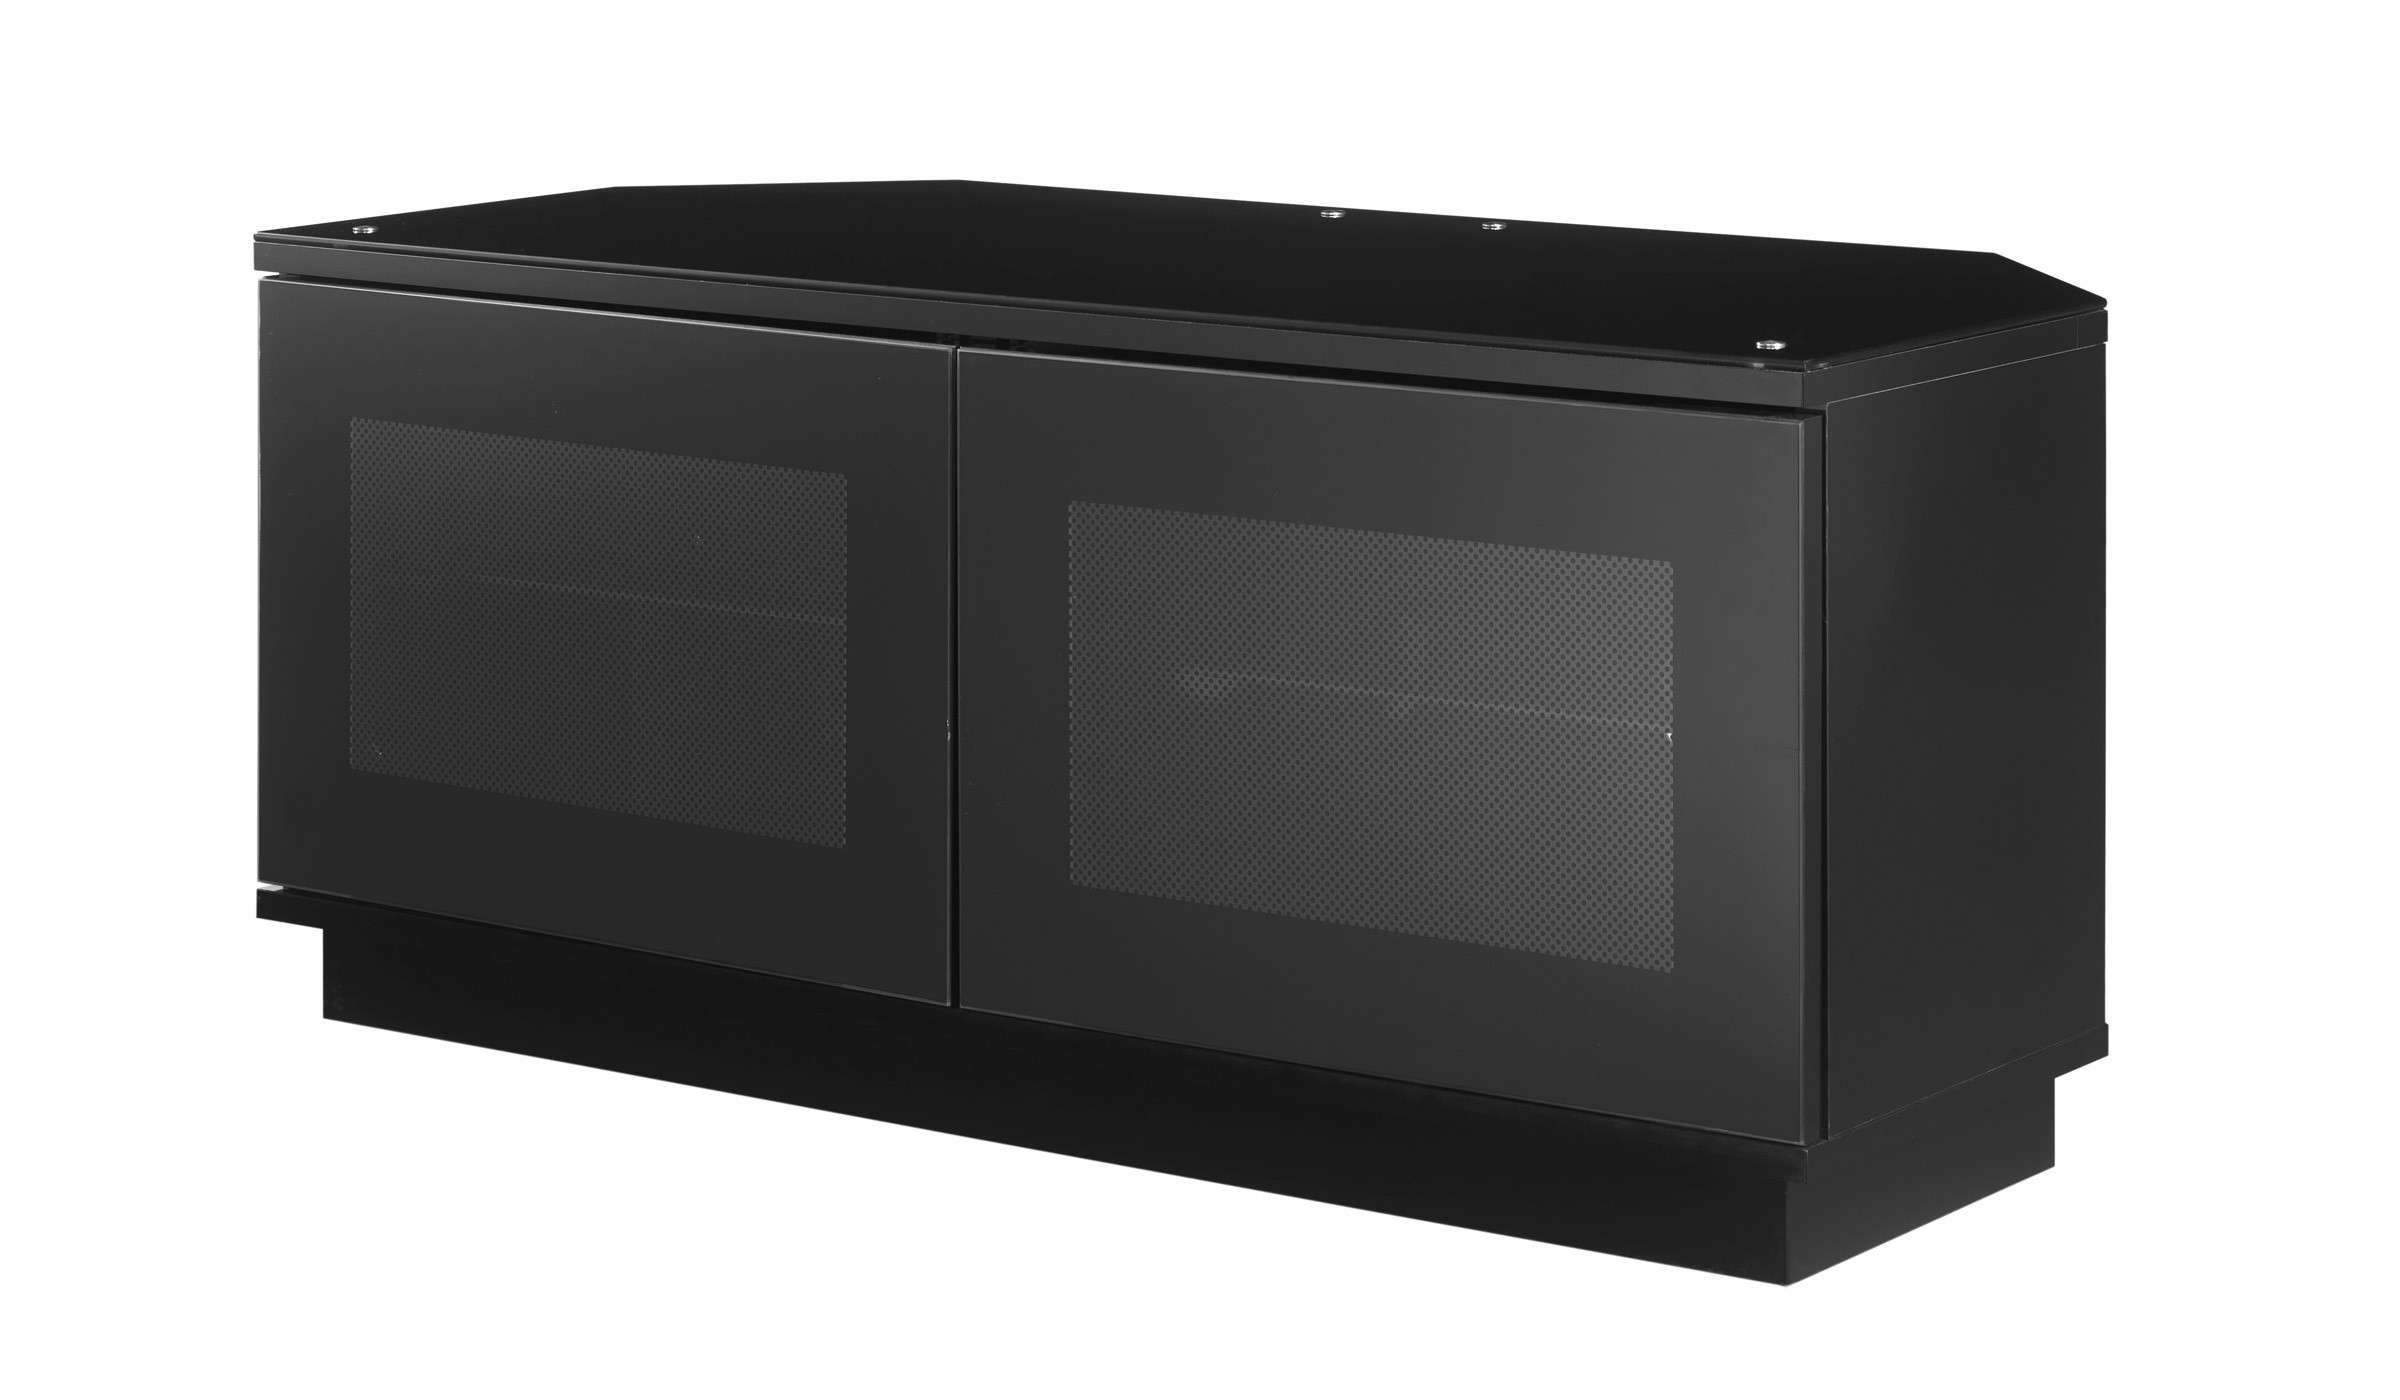 Small Black Tv Stand Cabinet With Door For Corner – Decofurnish Within Black Tv Cabinets With Doors (View 14 of 20)